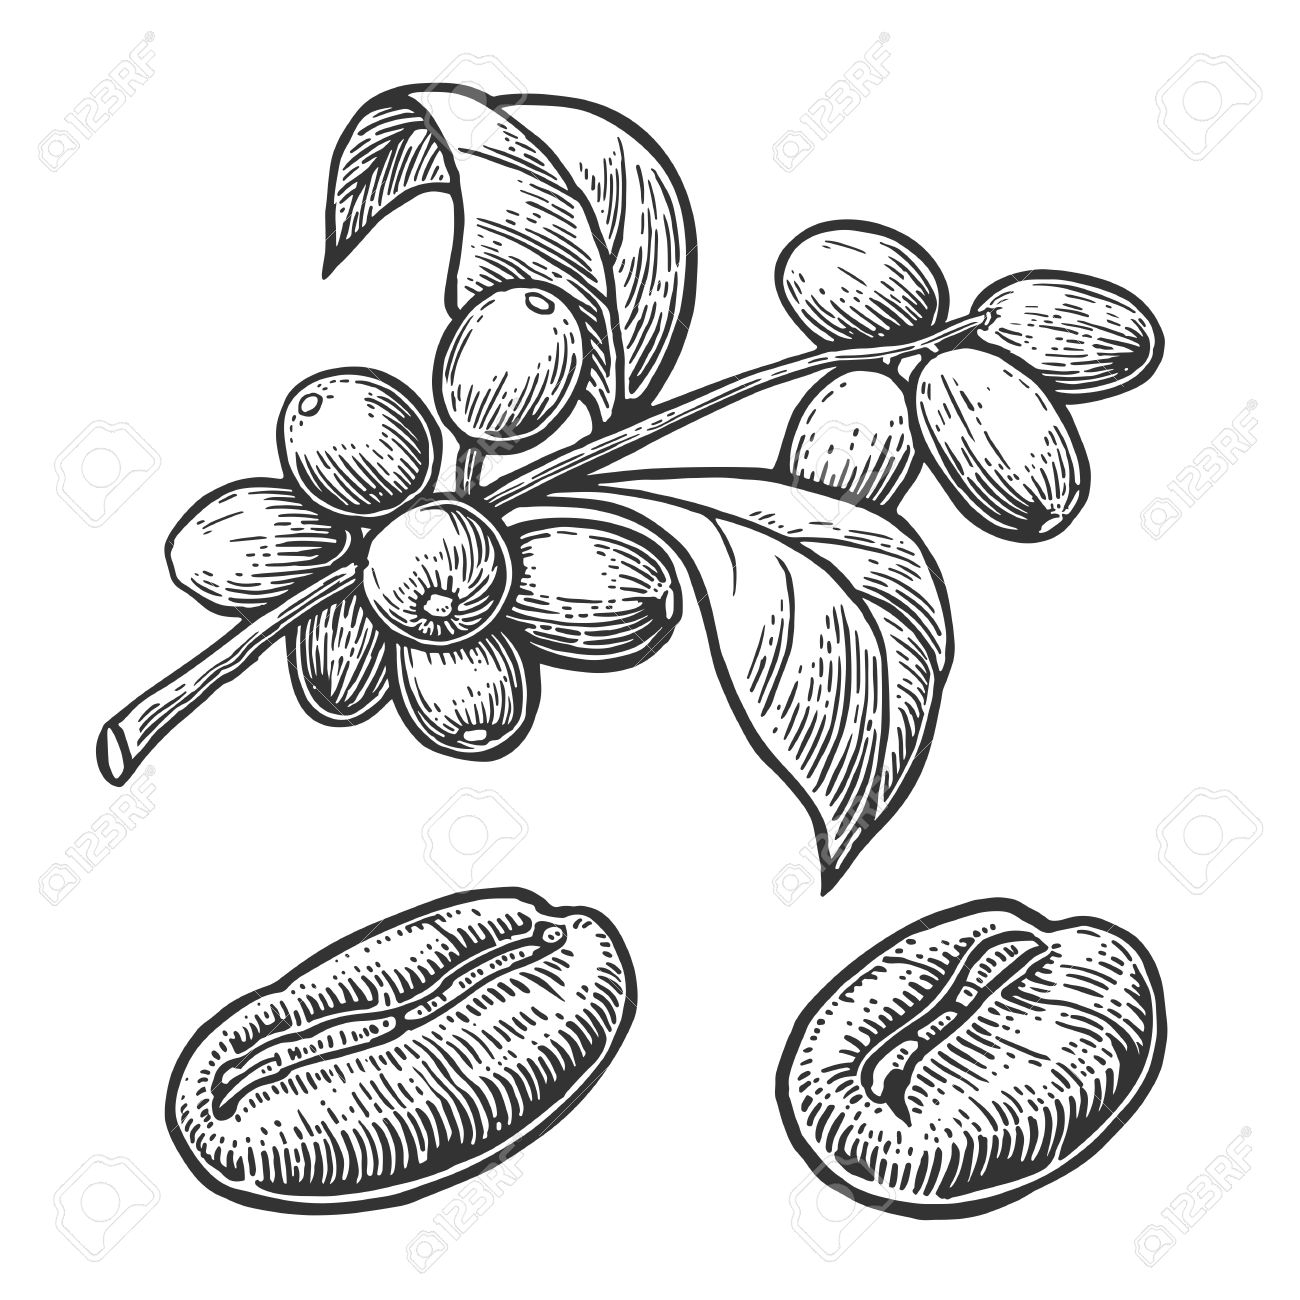 The Best Free Bean Drawing Images Download From 363 Free